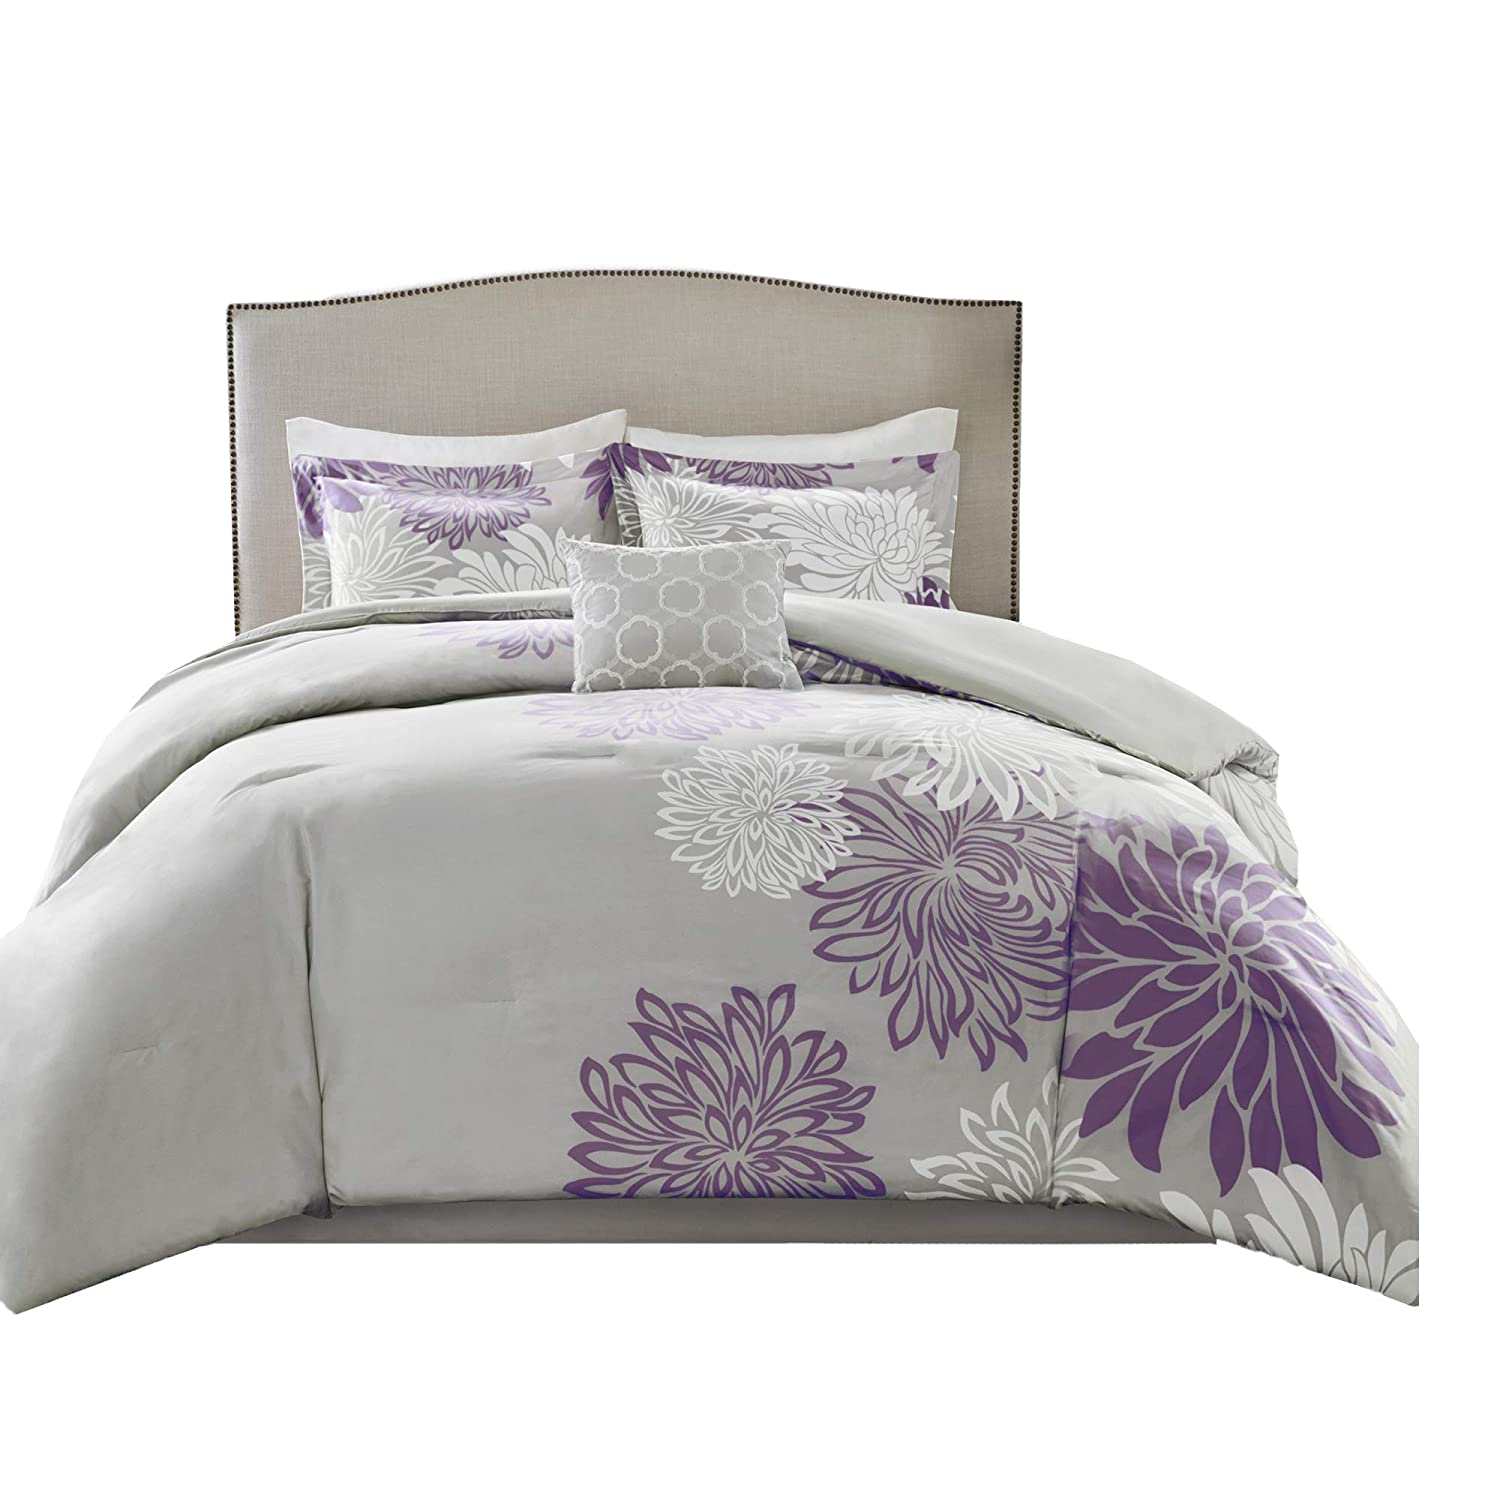 Comfort Spaces Enya 5 Piece Comforter Set Ultra Soft Hypoallergenic Microfiber Floral Print Bedding, Full/Queen, Purple/Grey